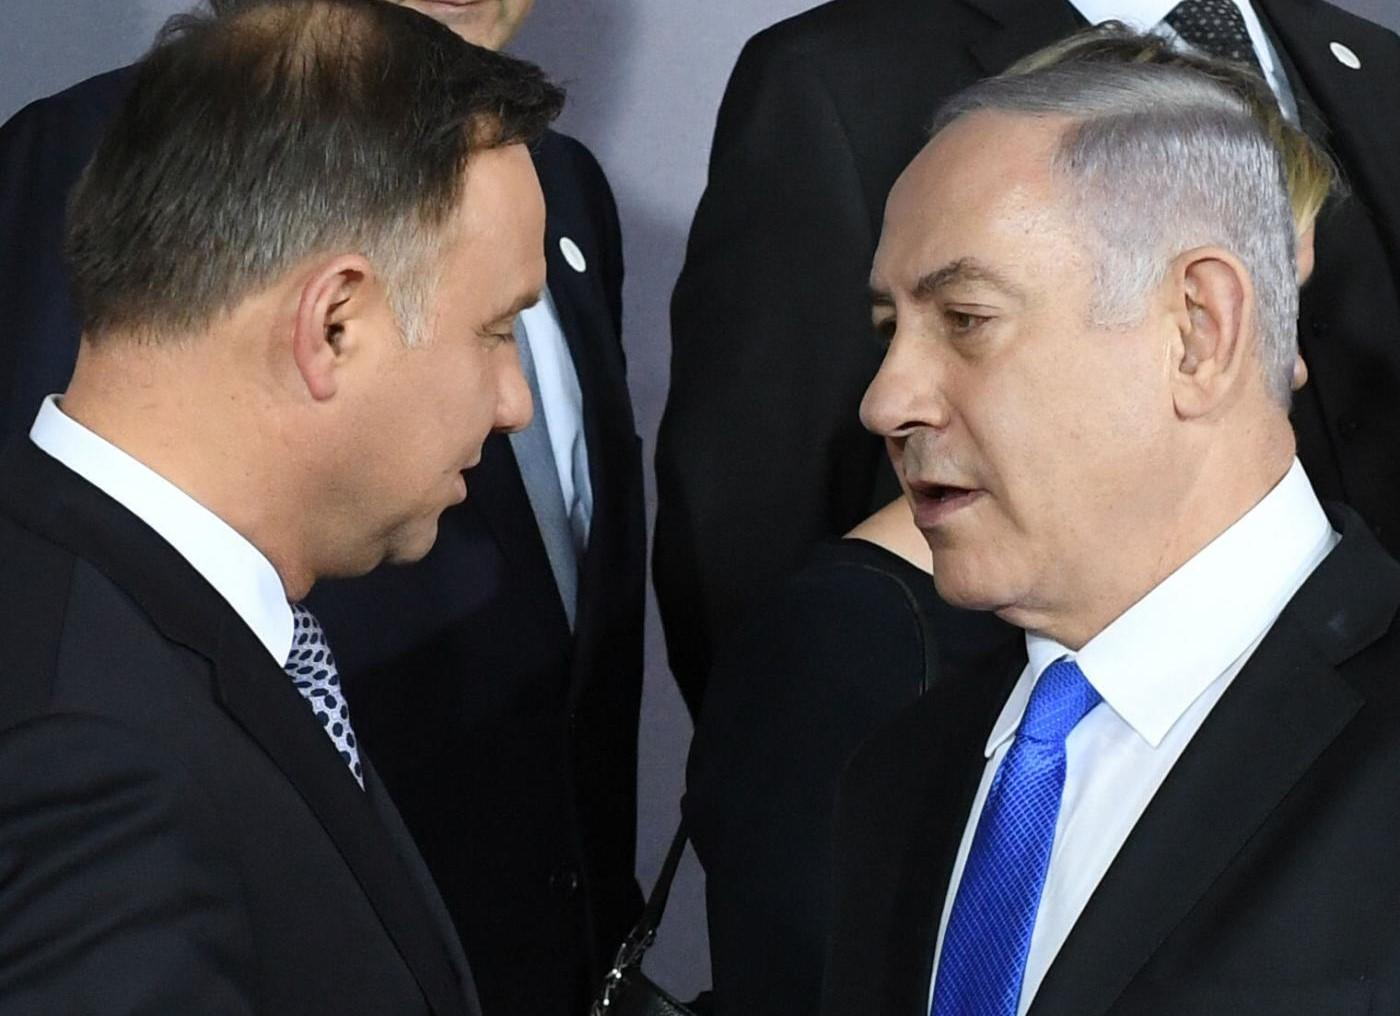 Poland says may withdraw from summit as Israel row escalates